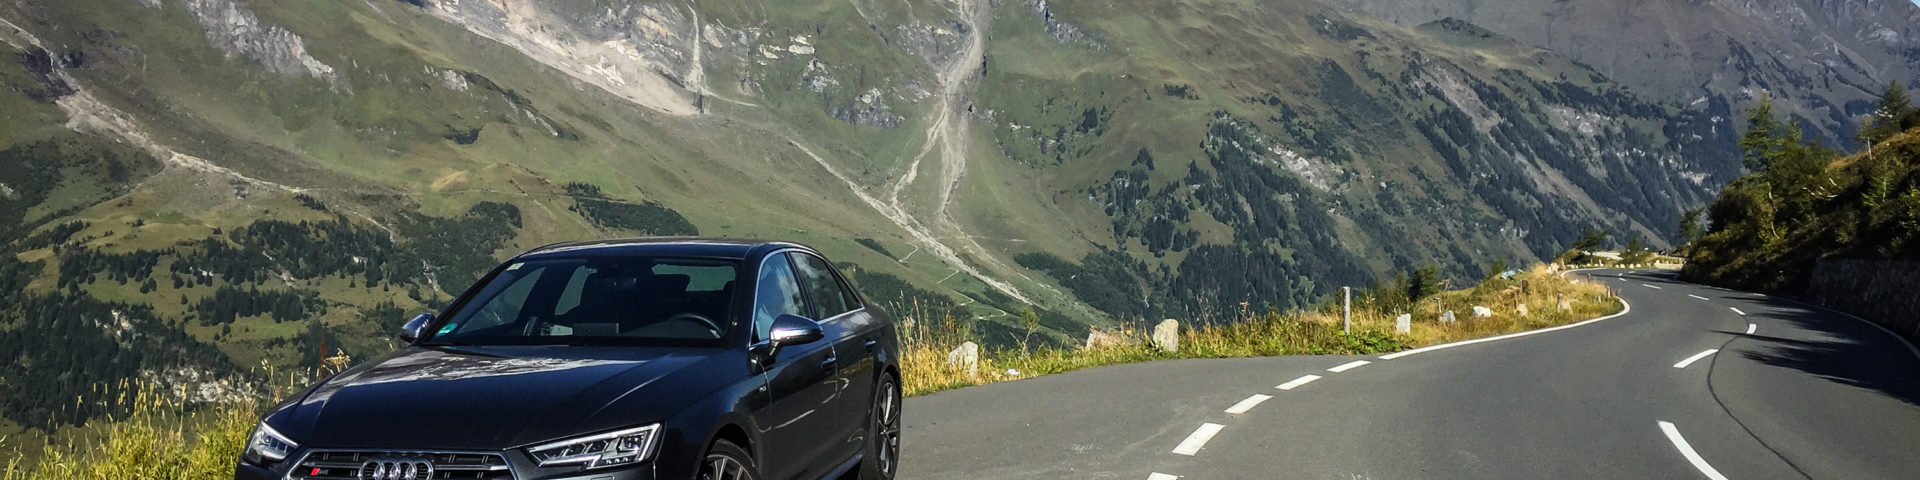 tourists guide for driving in austria